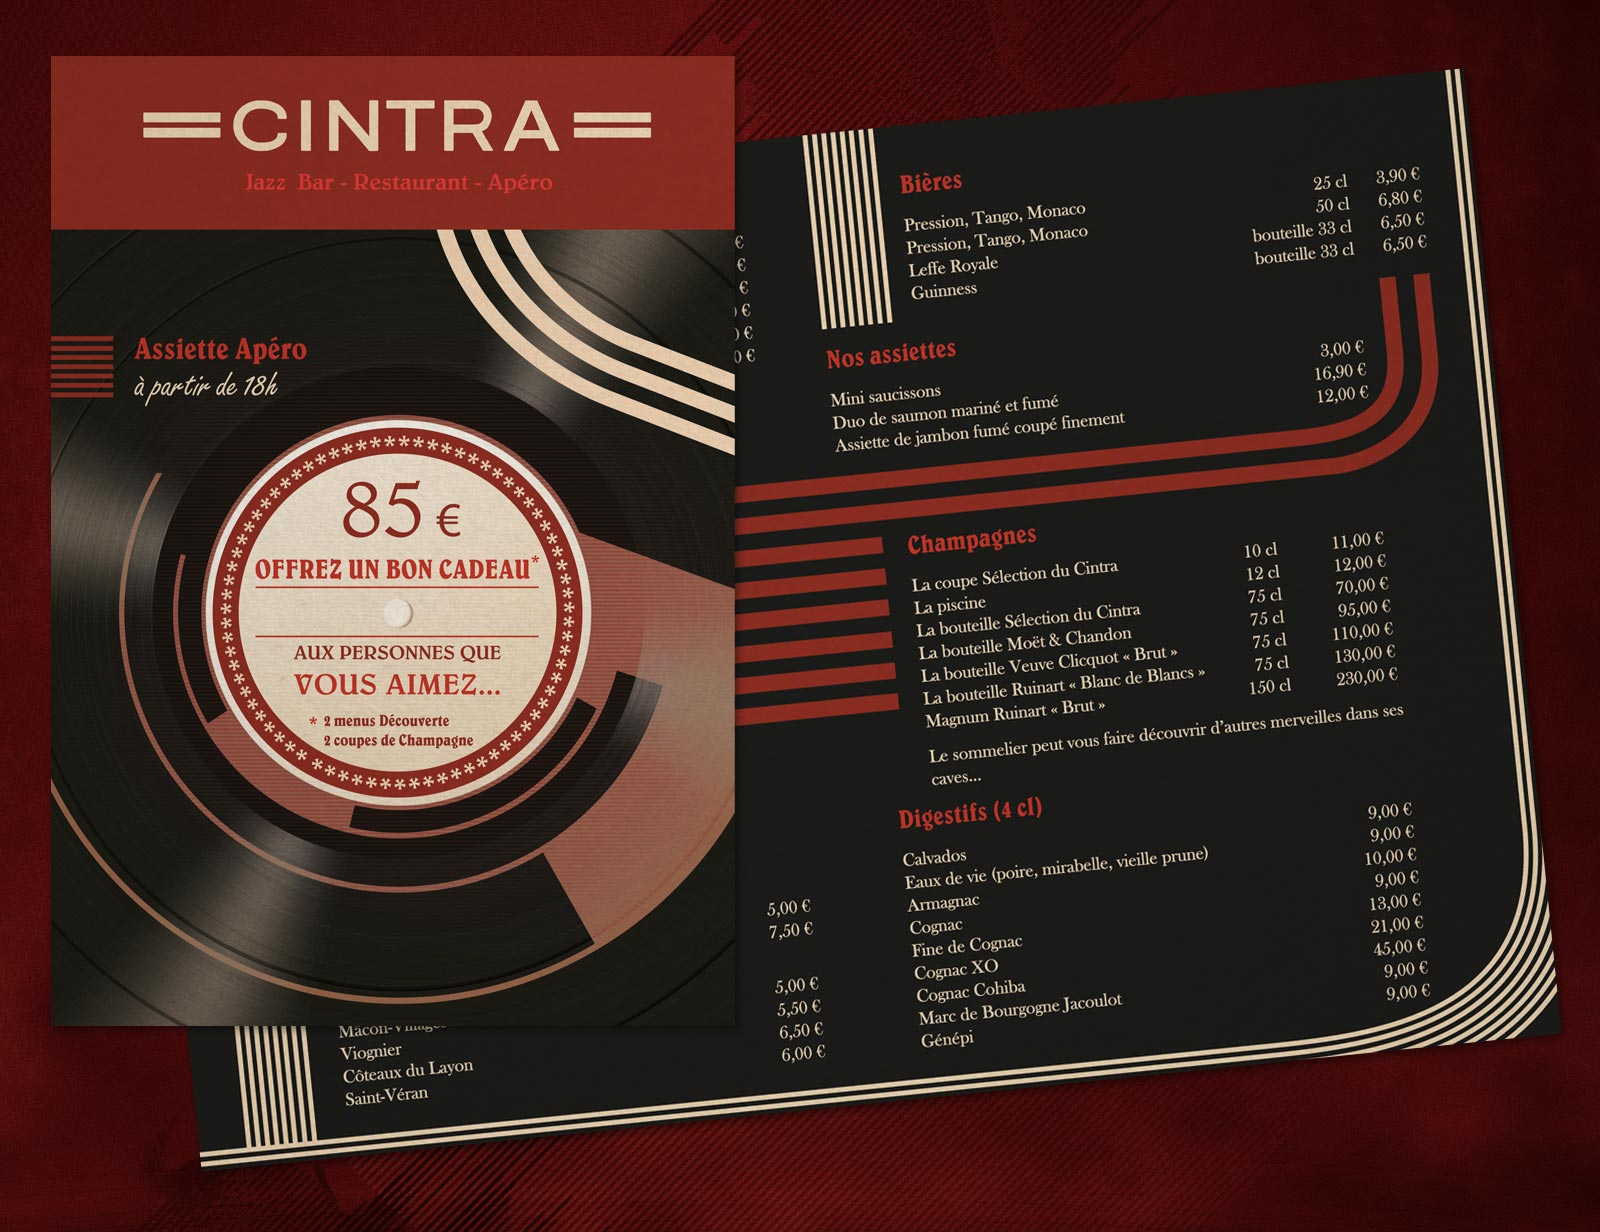 Le Cintra - Restaurant Piano Bar à Lyon